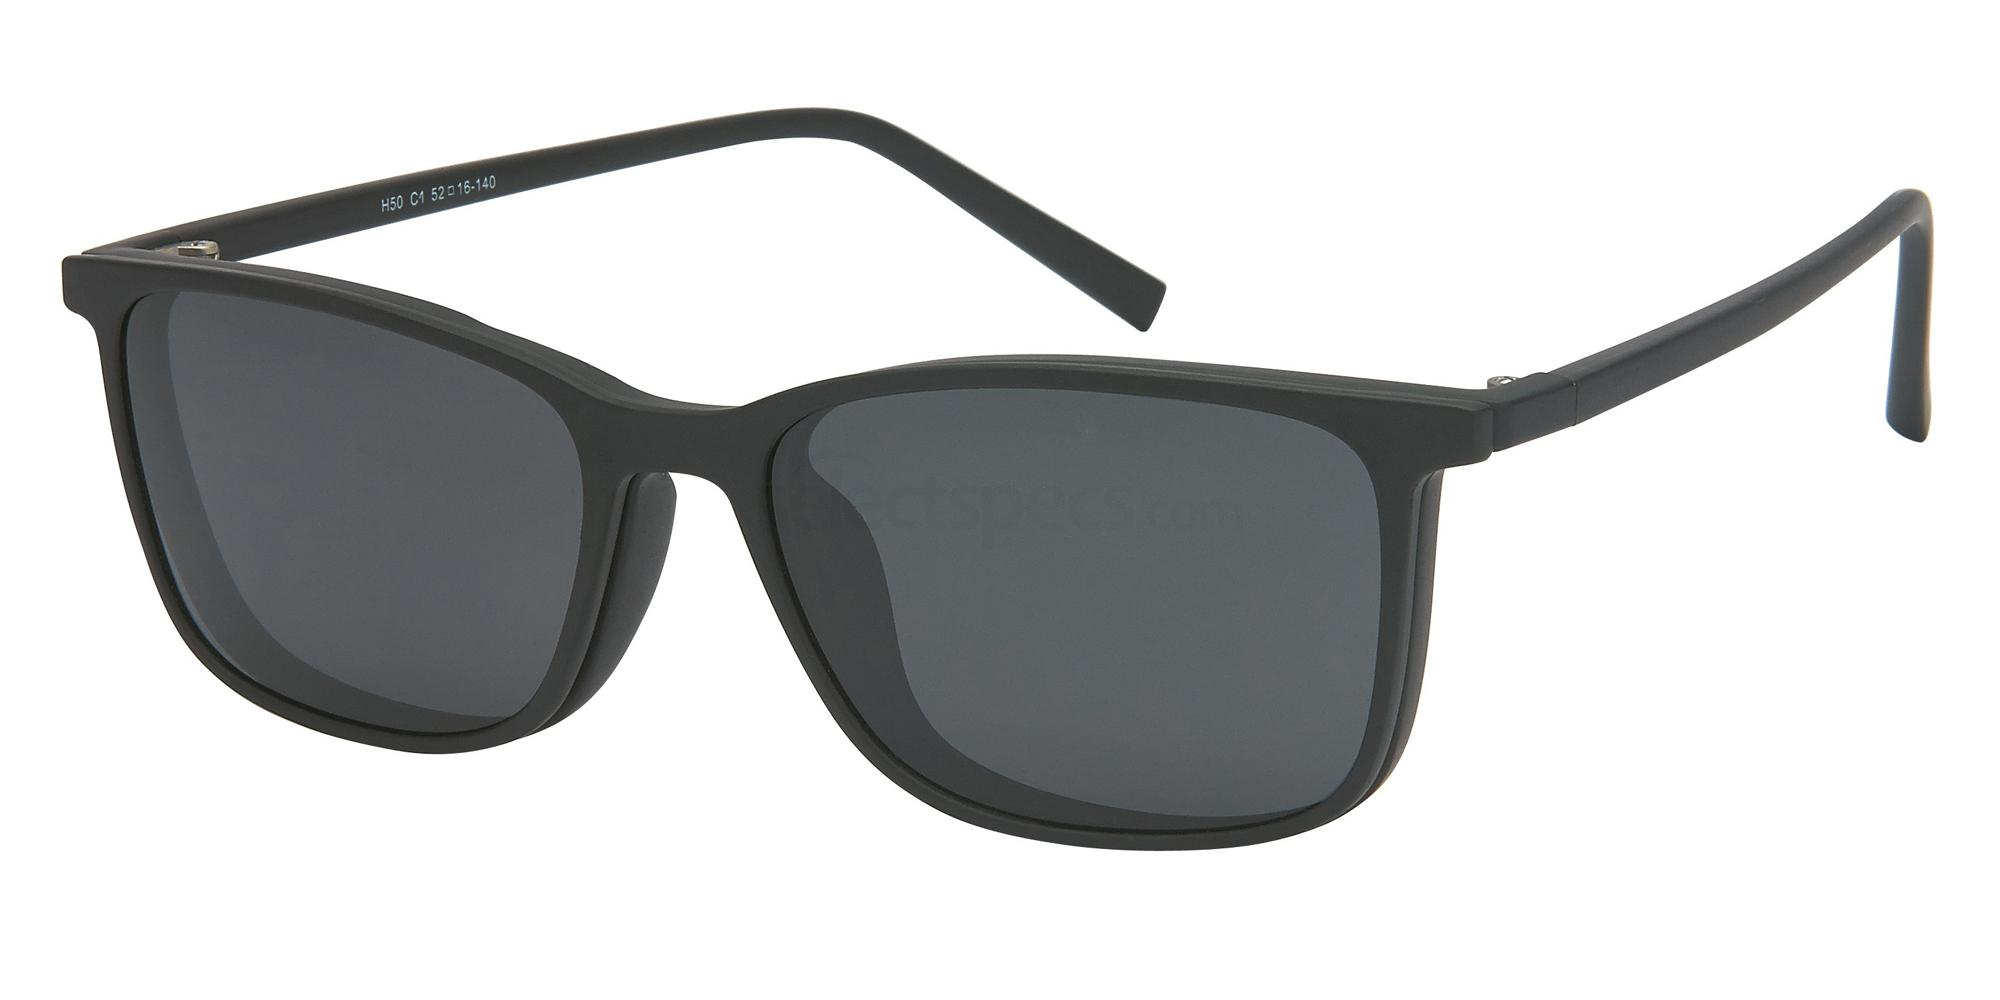 C1 H50 - With Clip on Glasses, Halstrom